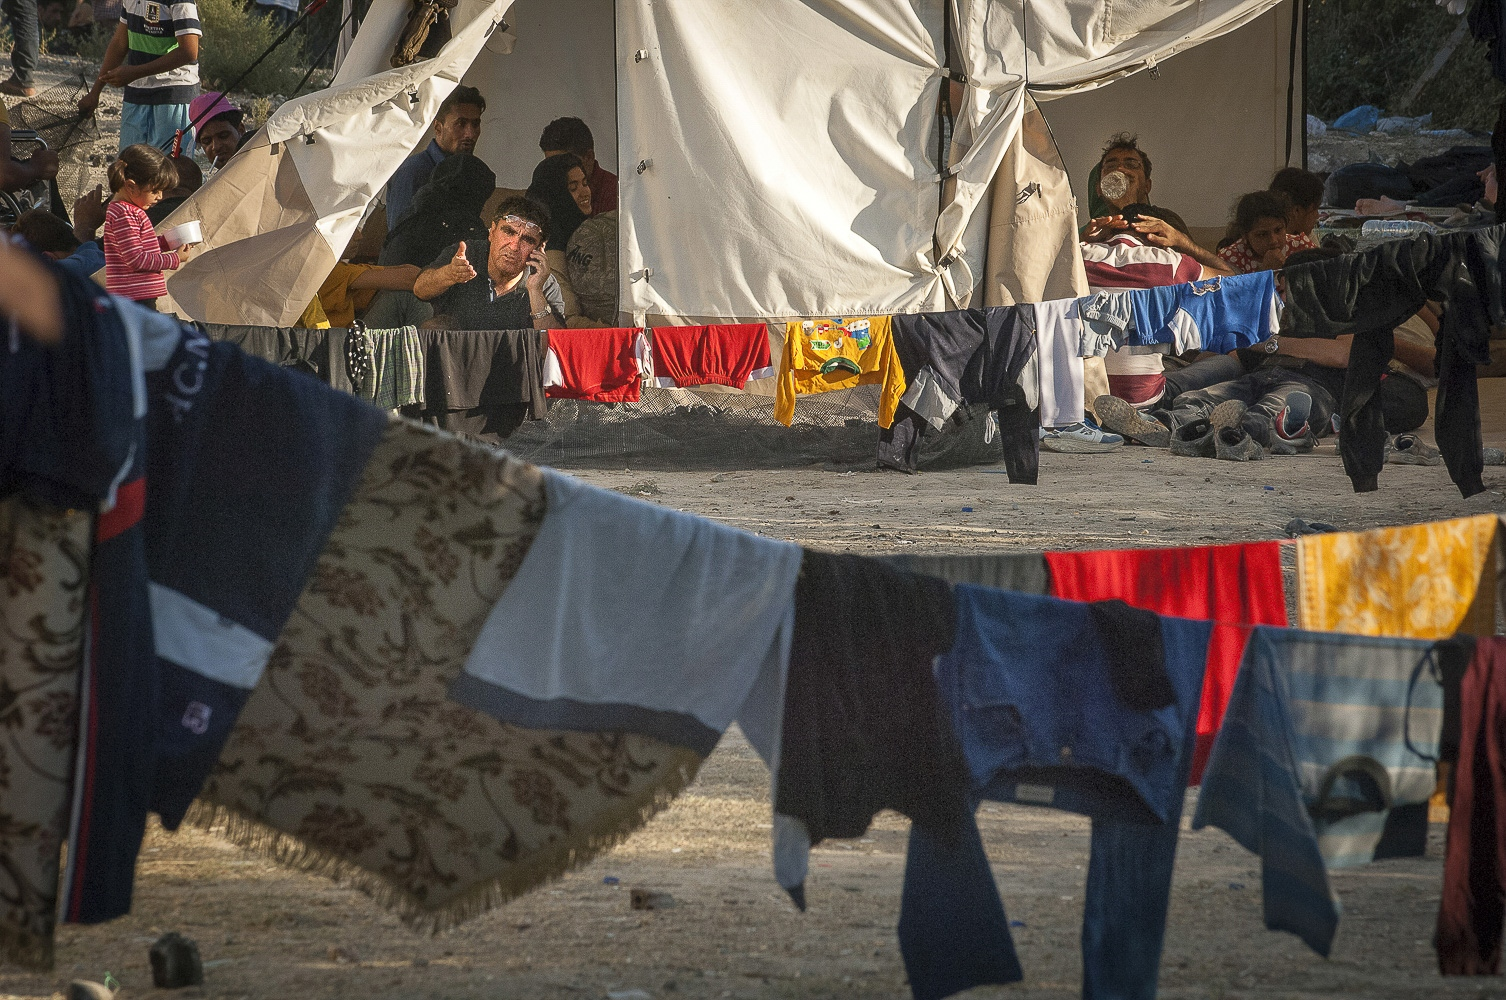 Tents in Moria Registration Camp, Lesbos, Greece. Mobile communication is essential for the refugees. Keeping contact with those who have travelled to Europe before them provides them with information on what to expect, which roads are still open, which train routes to take. This information is likewise passed on to those leaving Turkey, and down the line to Syria, Iraq, Afghanistan etc.